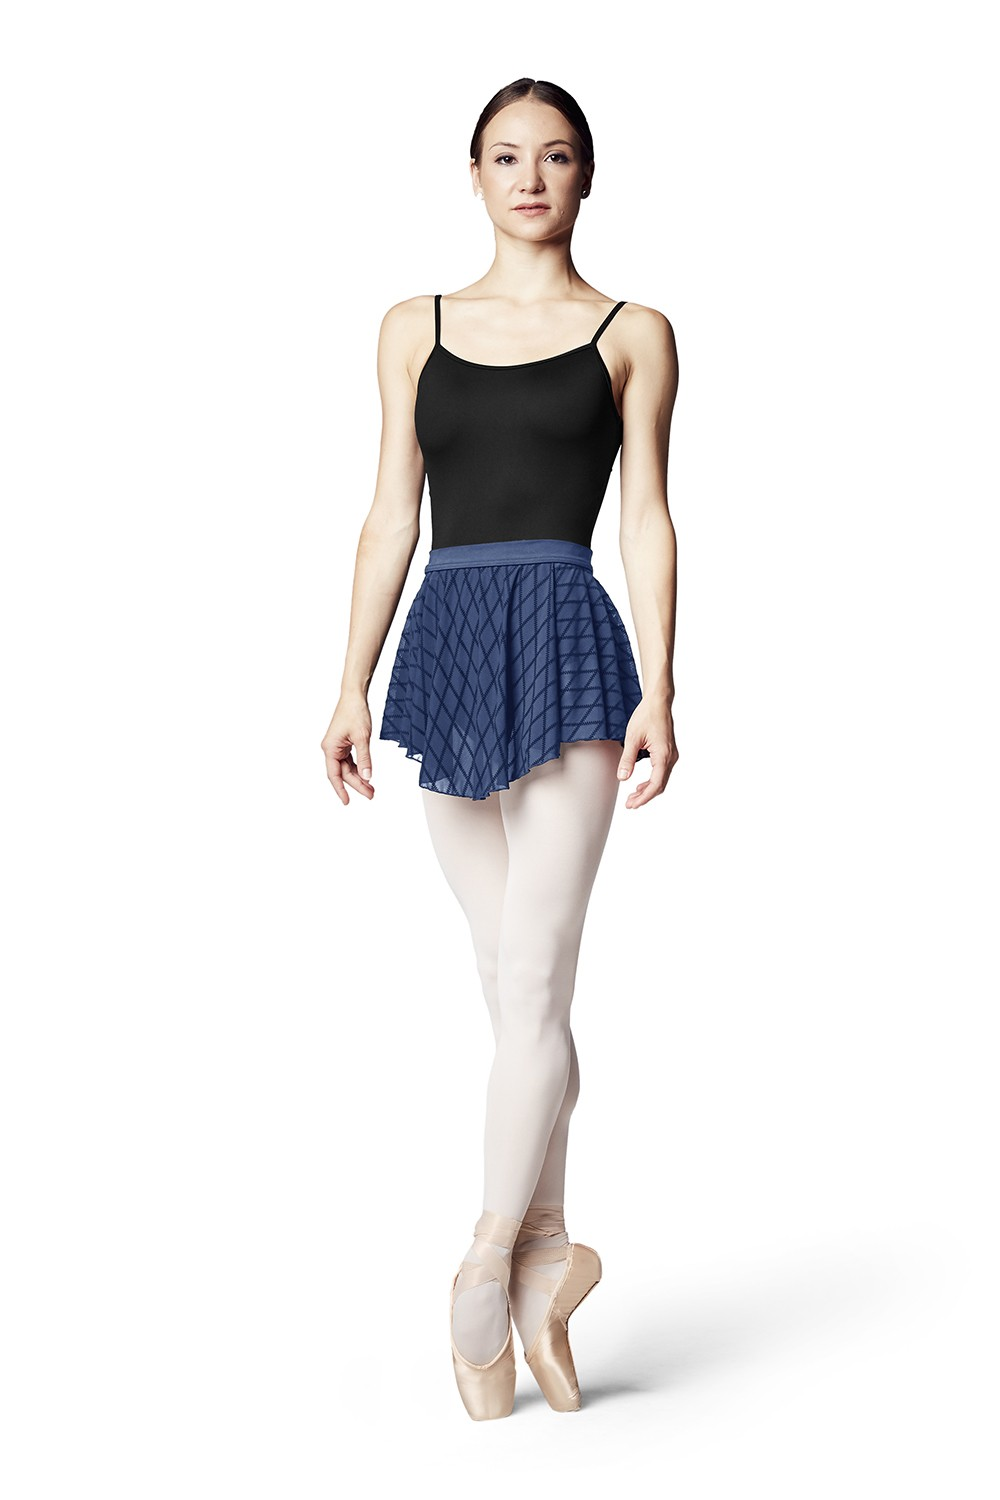 Catia Women's Dance Skirts